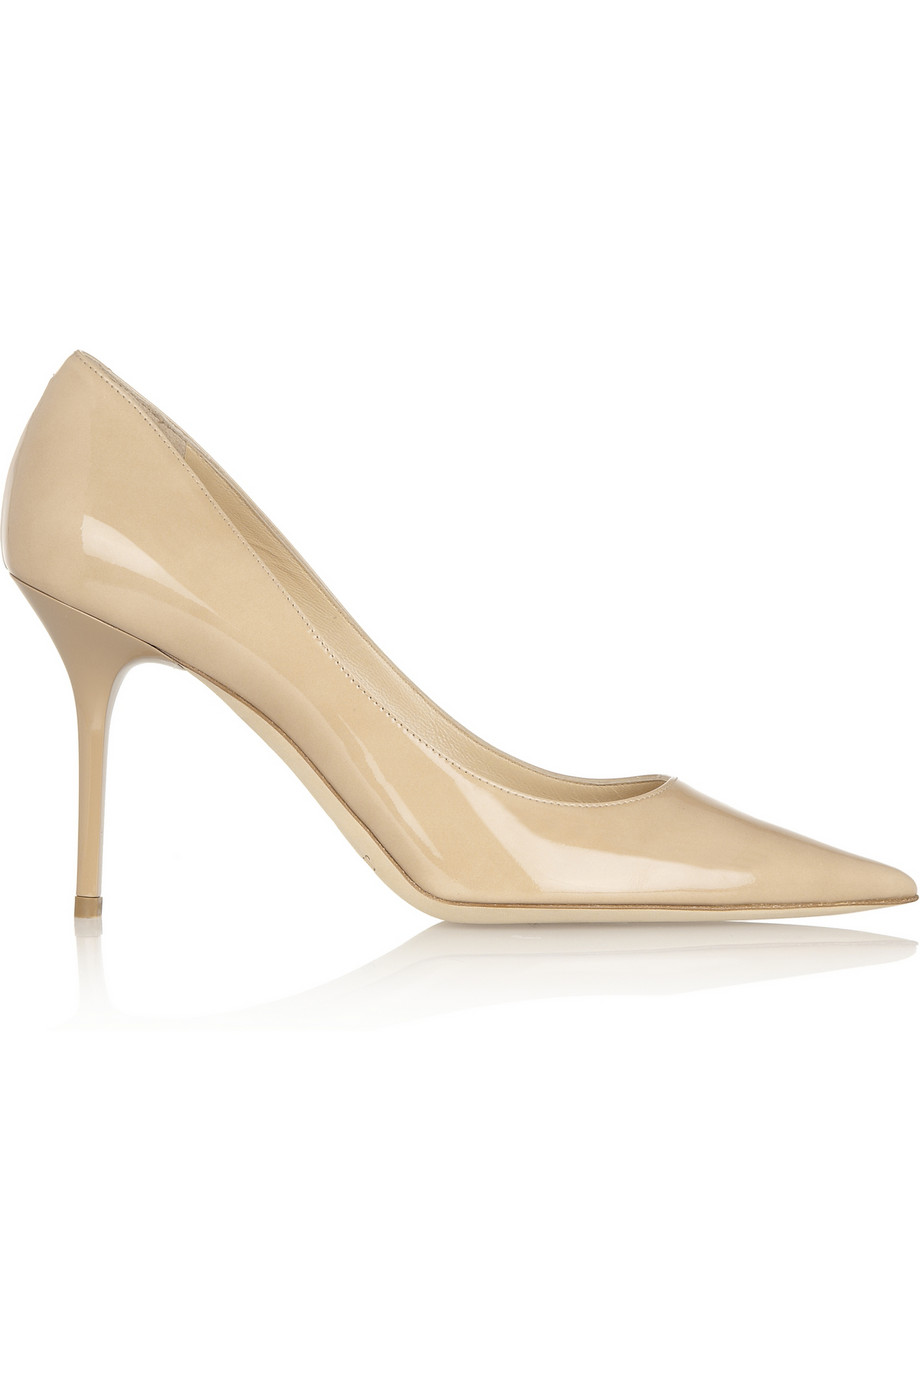 Jimmy Choo - Escarpins (395 €)